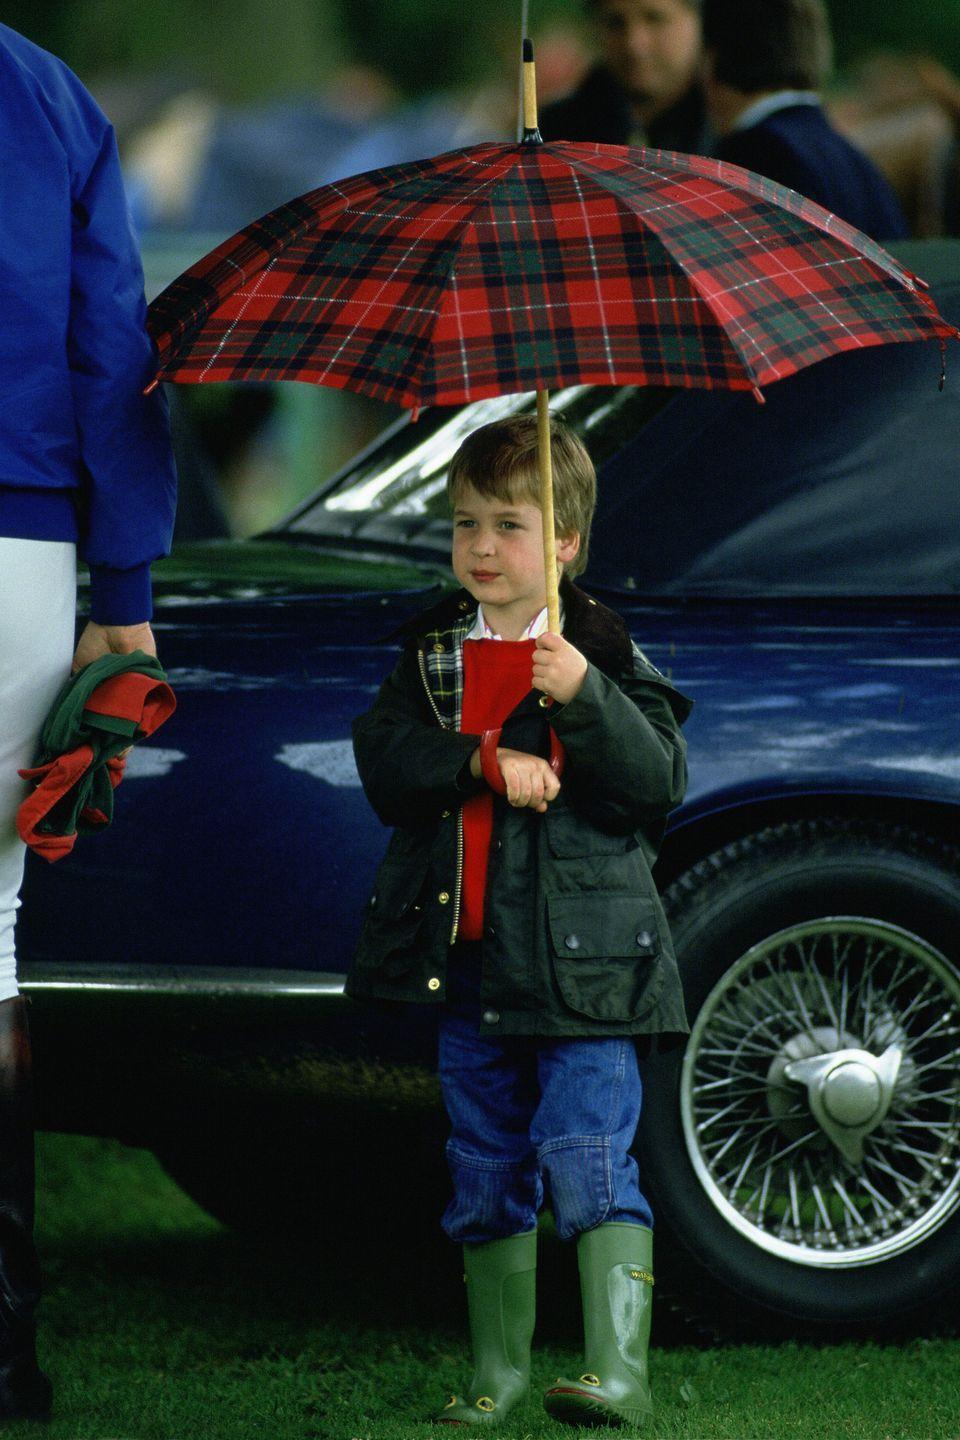 <p>From a young age, Prince William knew that a plaid umbrella was the perfect accessory for a pair of Wellies and a Barbour jacket.</p>